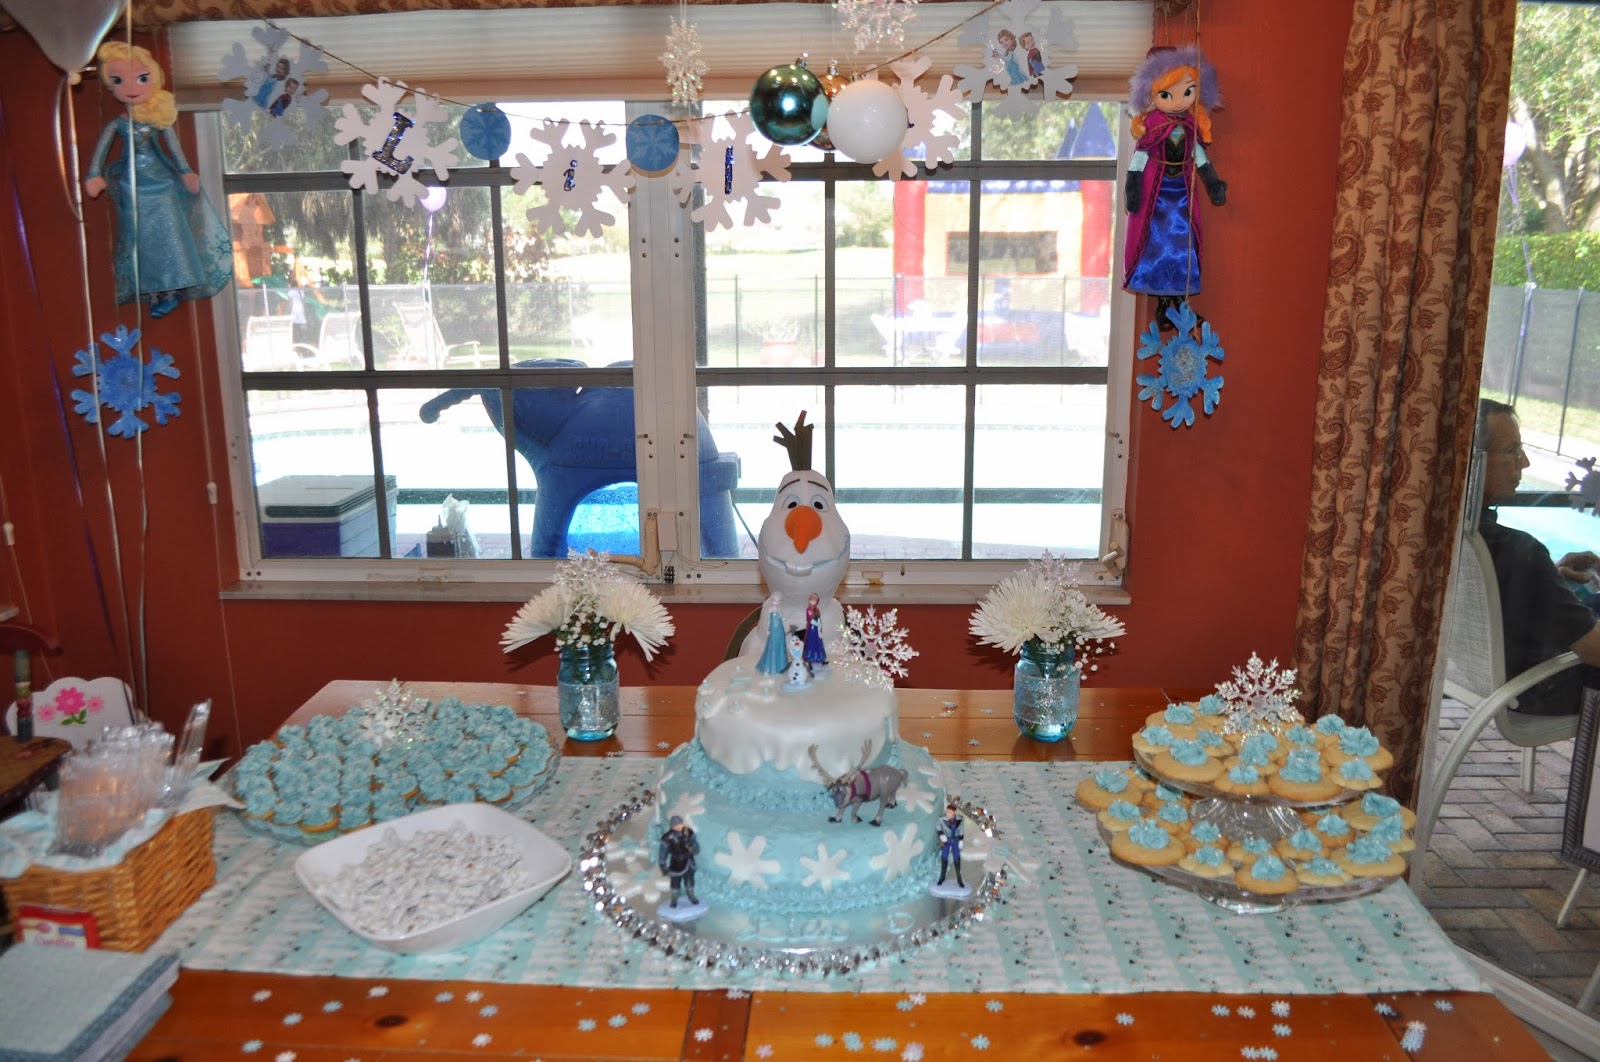 frozen birthday party decorations mommy in sports. Black Bedroom Furniture Sets. Home Design Ideas